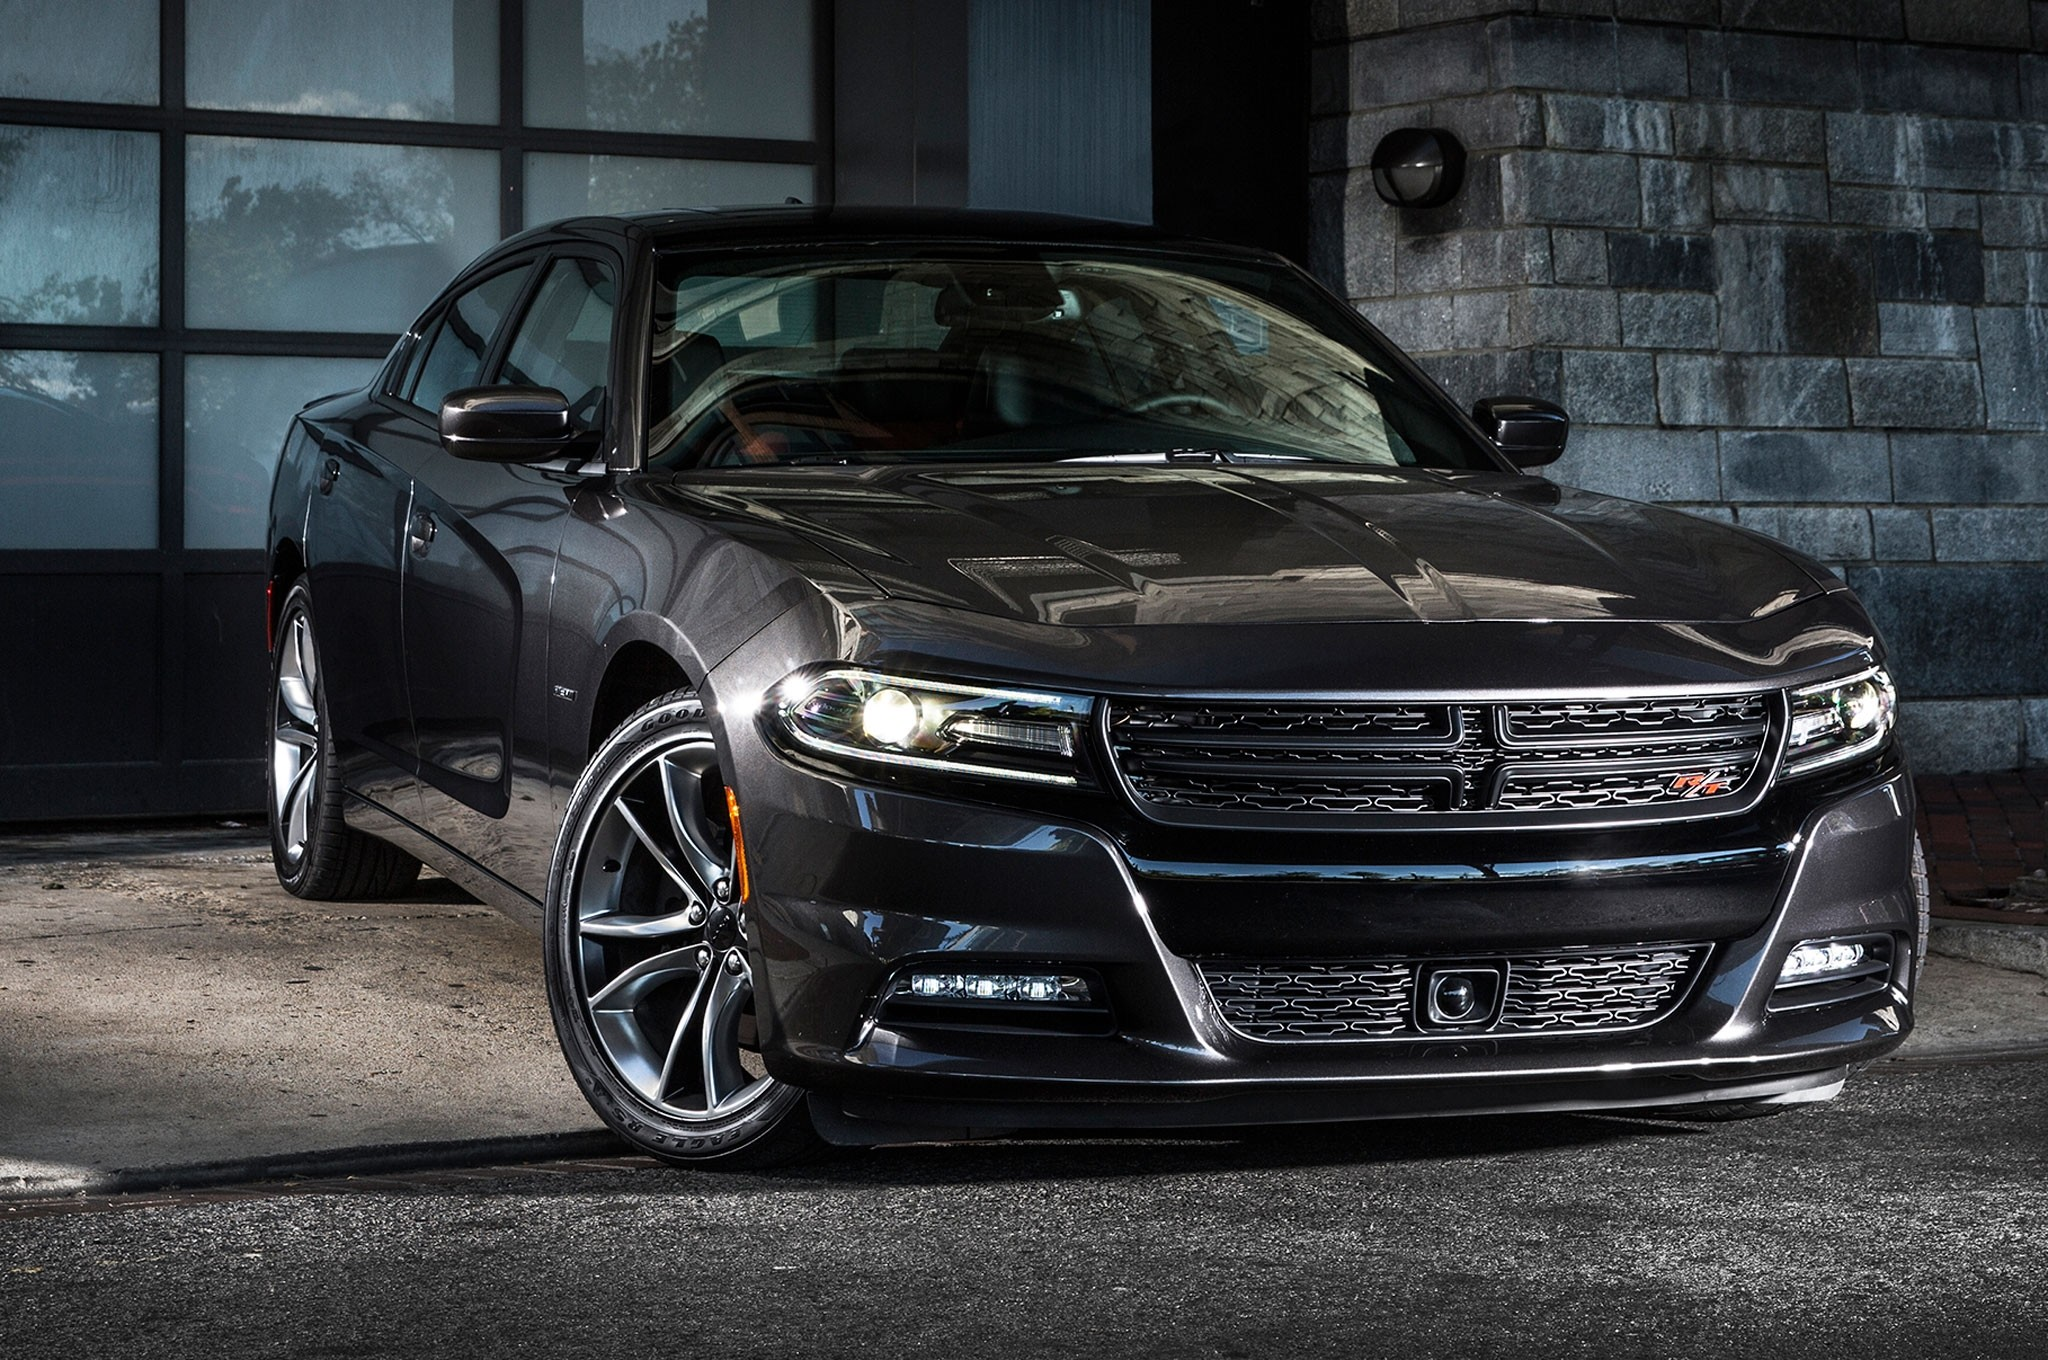 1000 Images About Dodge Charger On Pinterest Mopar Wallpaper For Iphone And  Charger